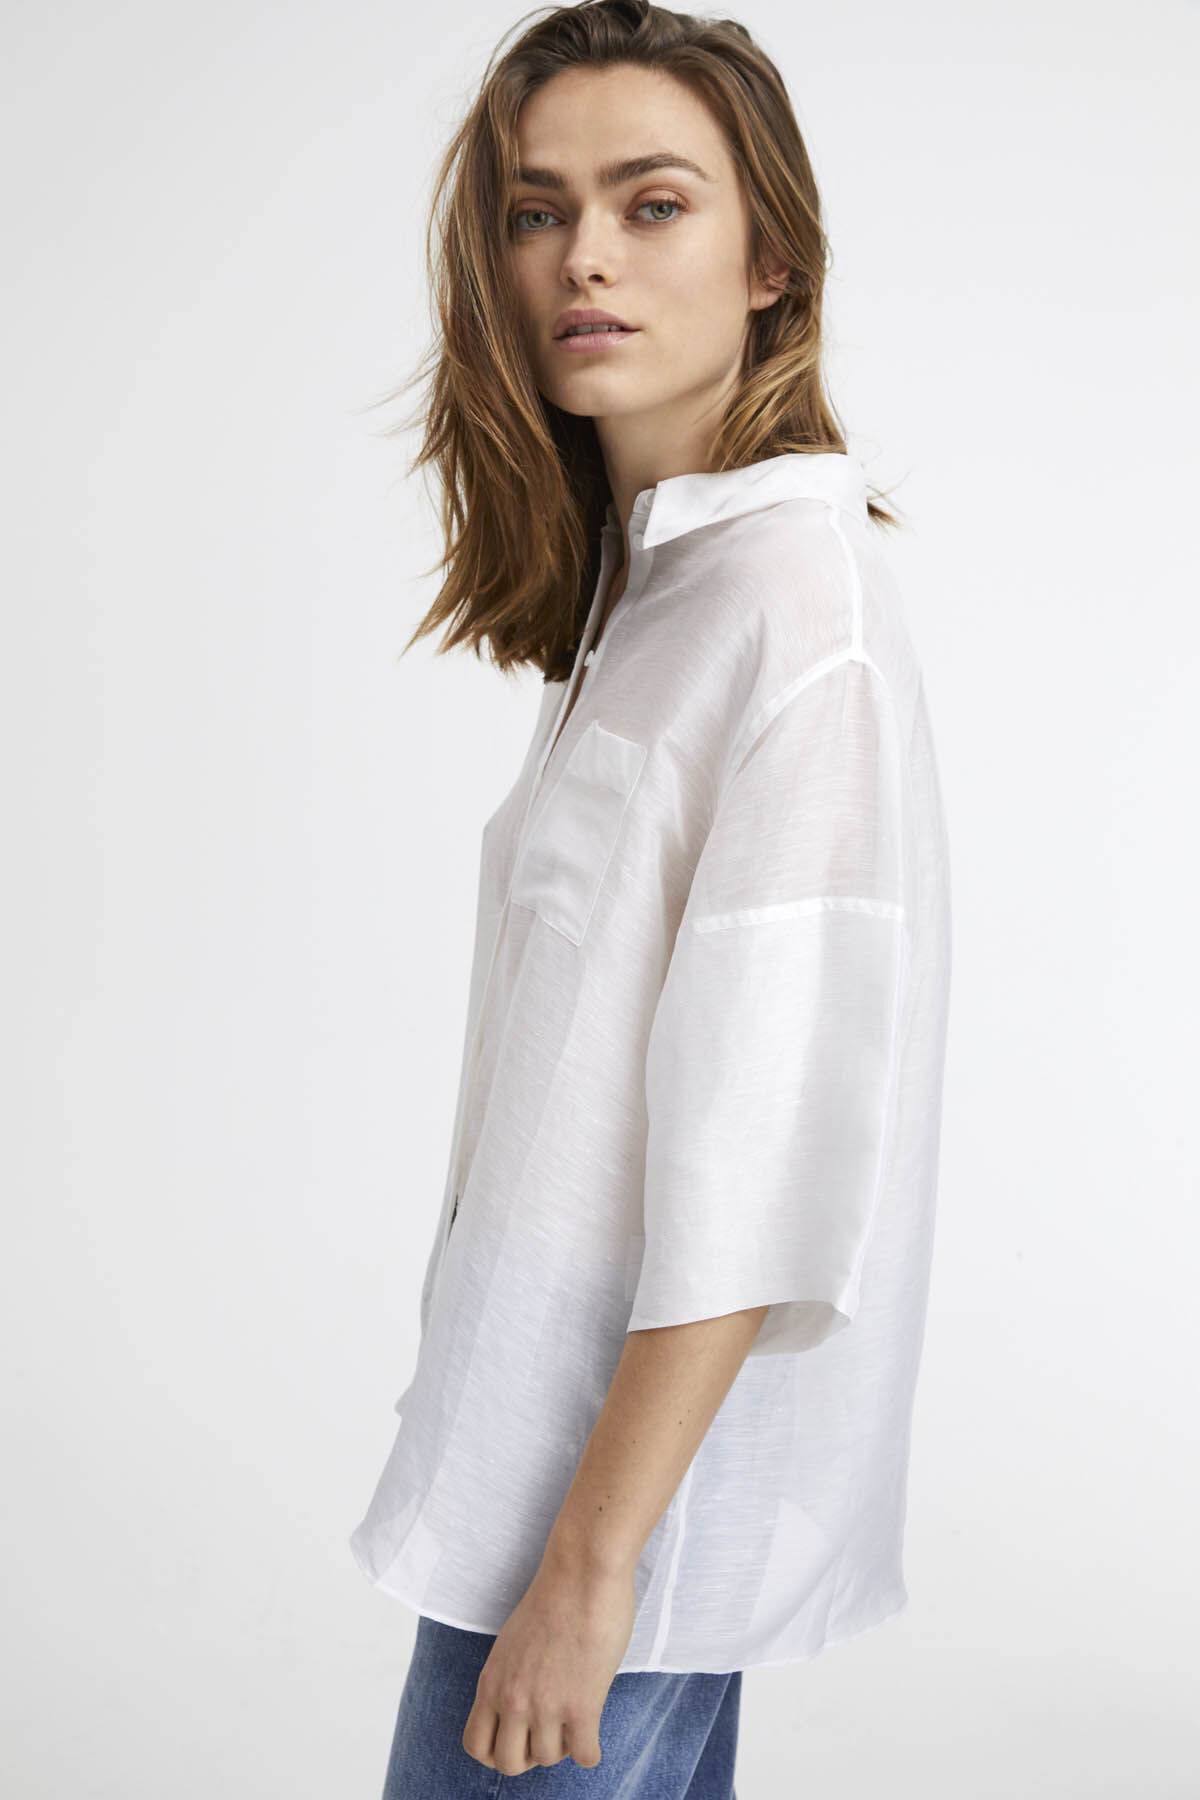 HENLEY SS SHIRT Poplin - Oversized Fit